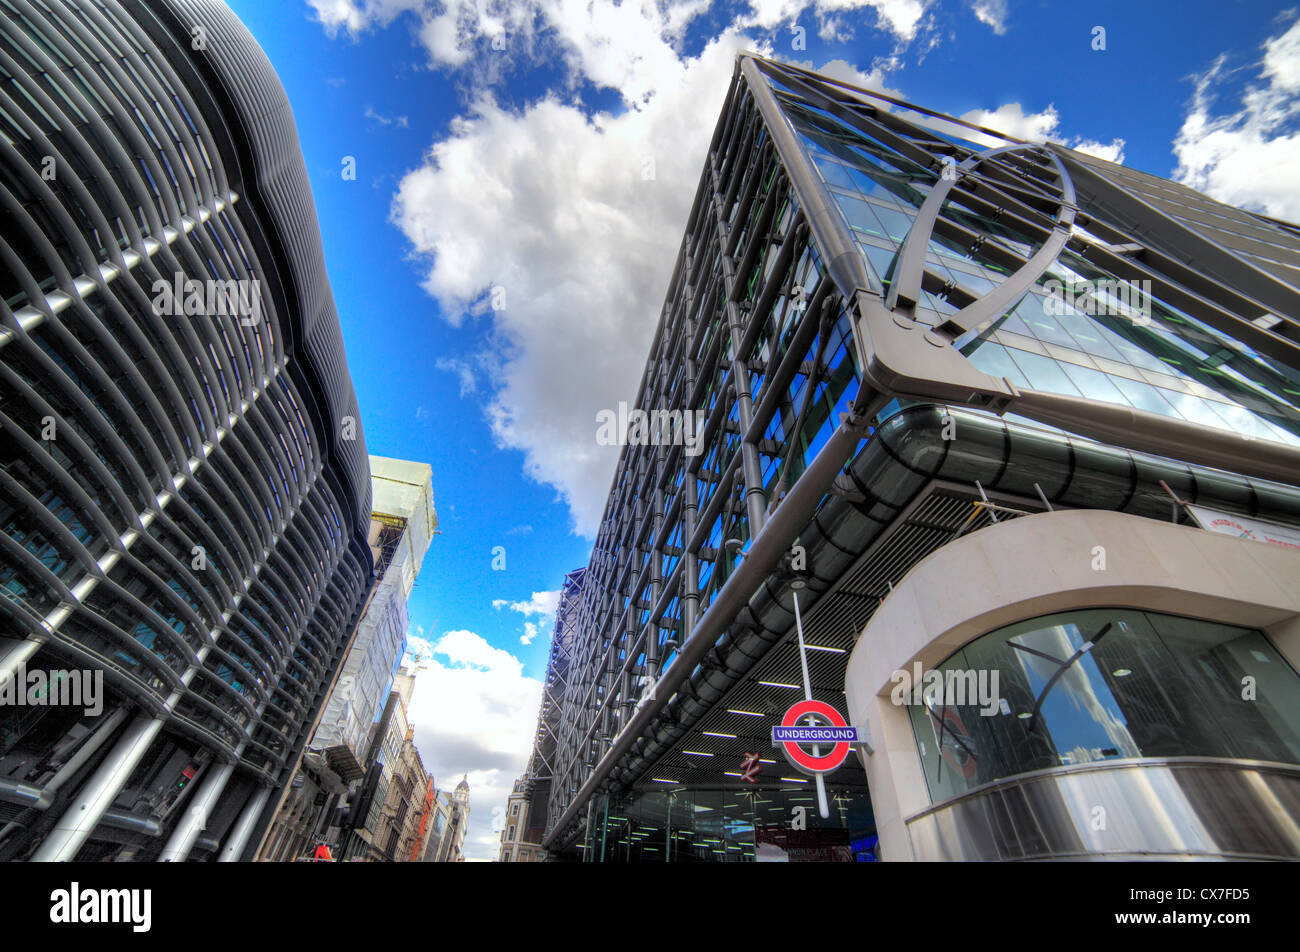 Cannon Place Office development and entrance to Cannon Street Station, London, UK - Stock Image